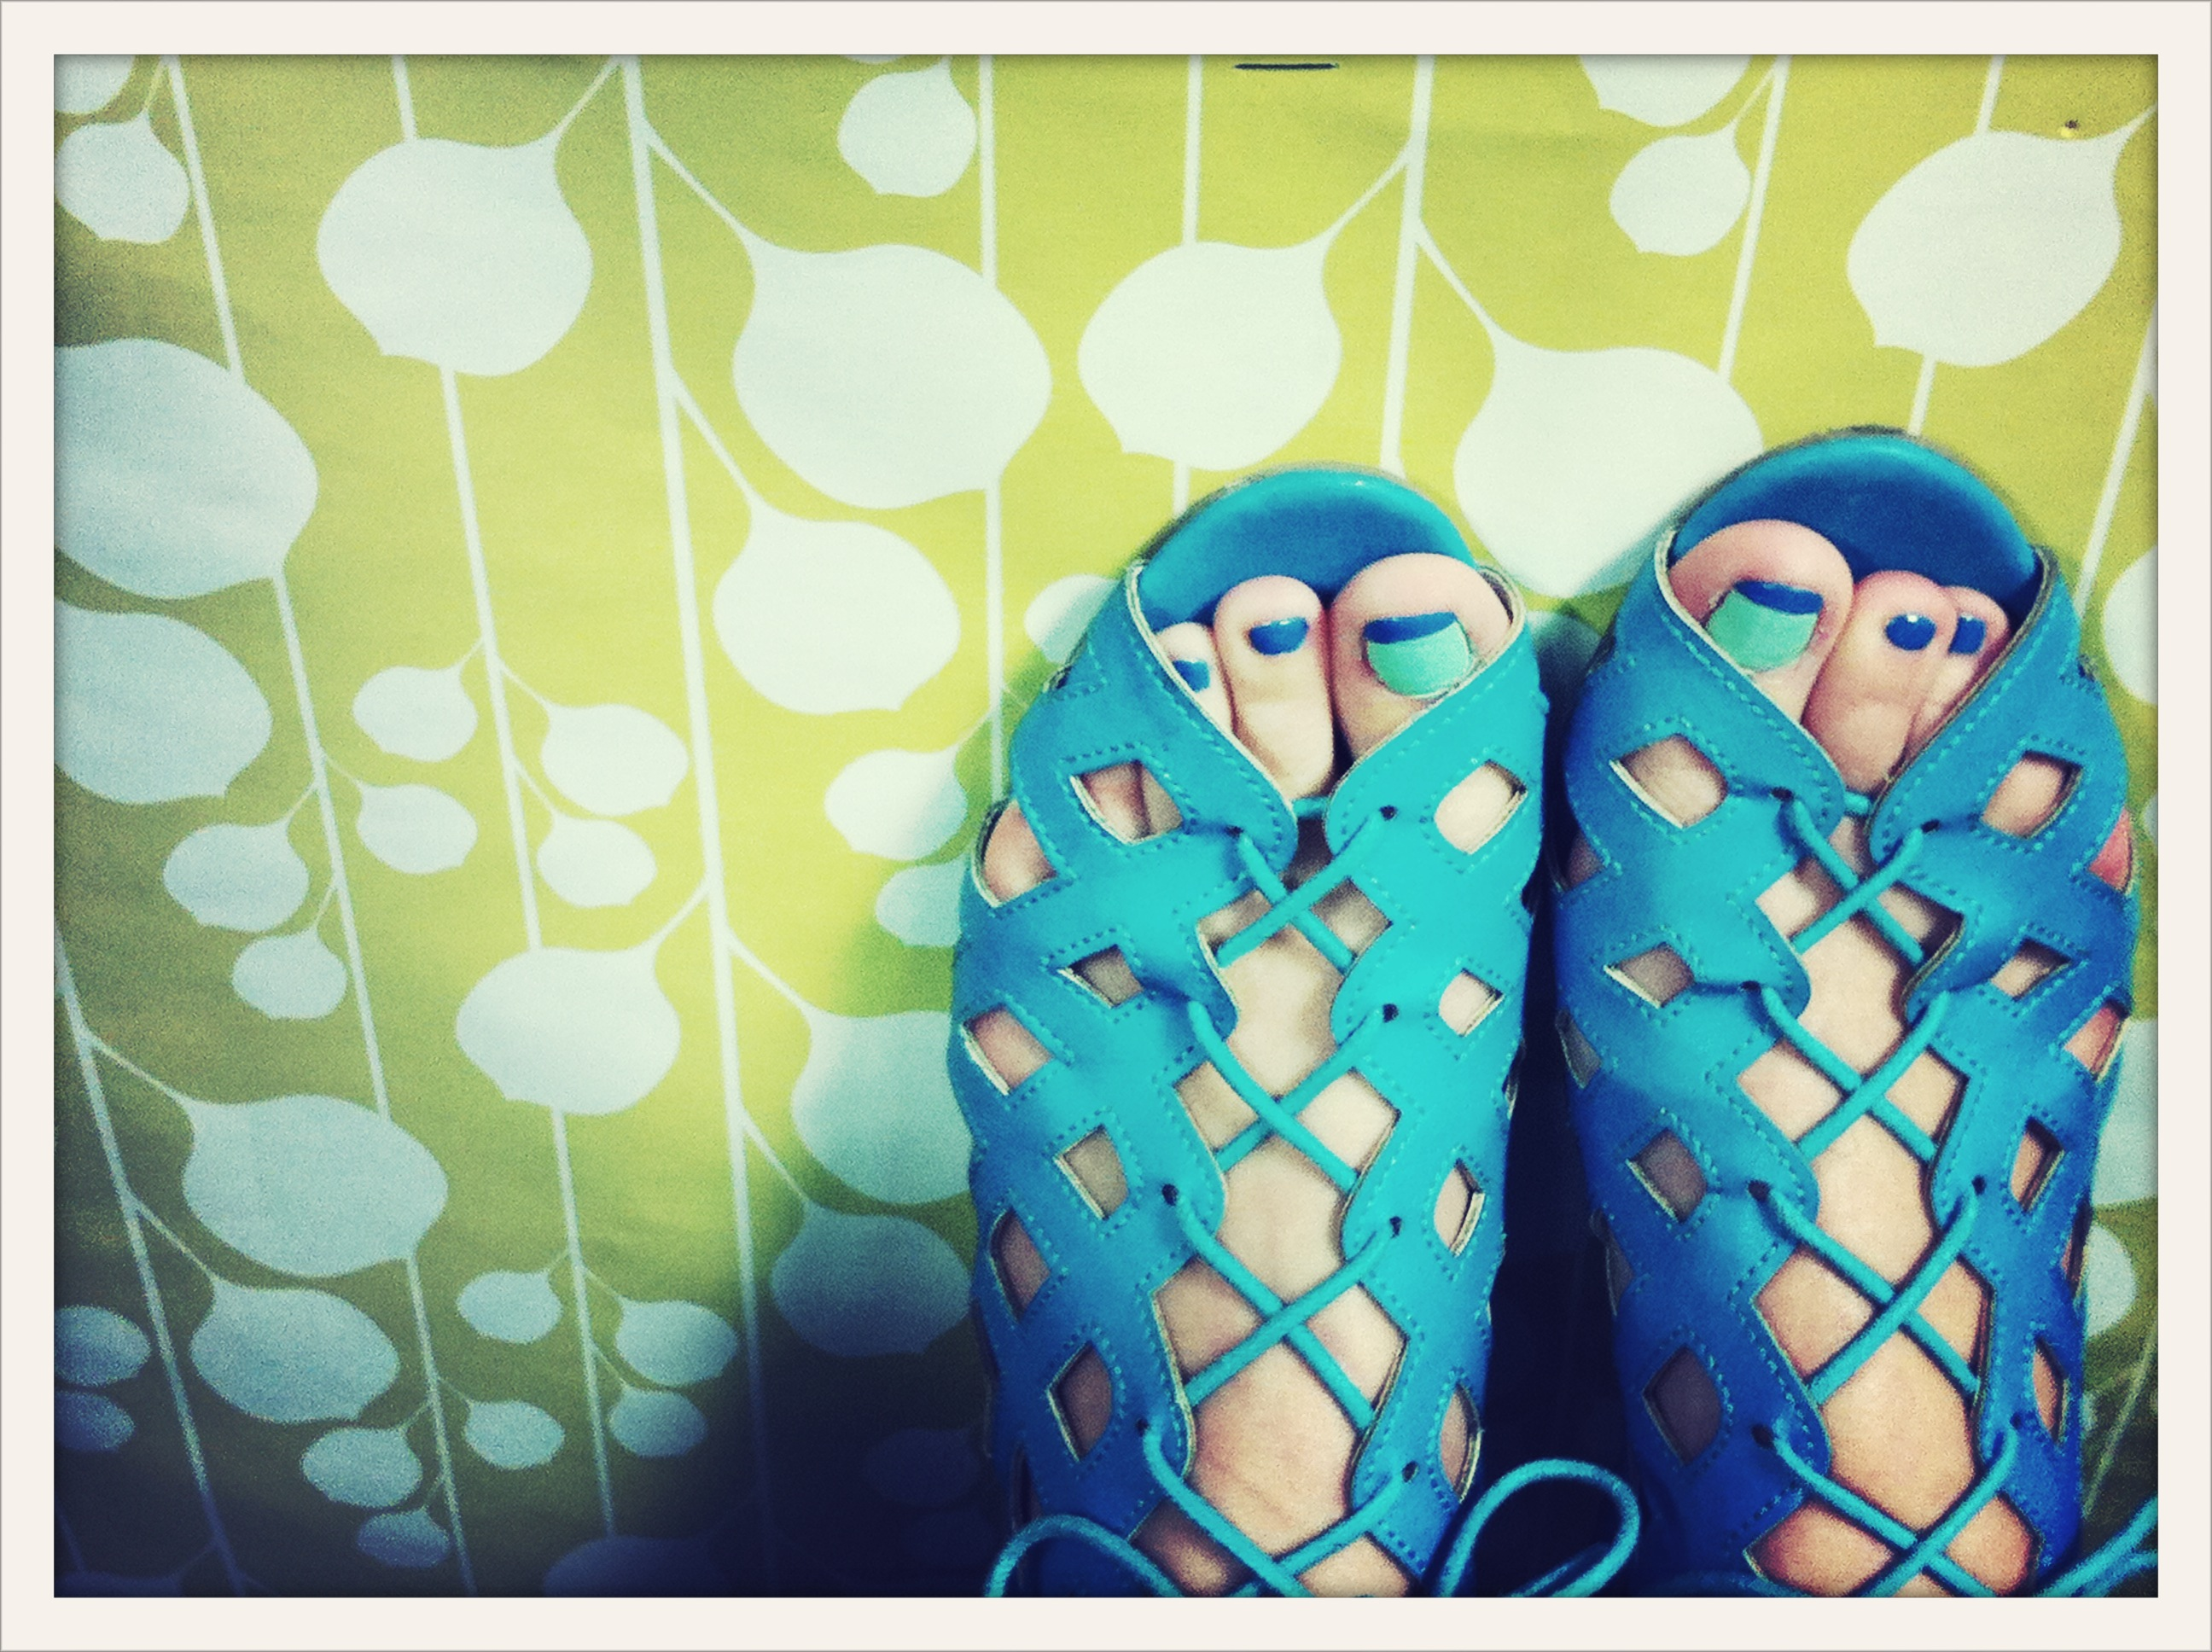 turquoise sandals on yellow